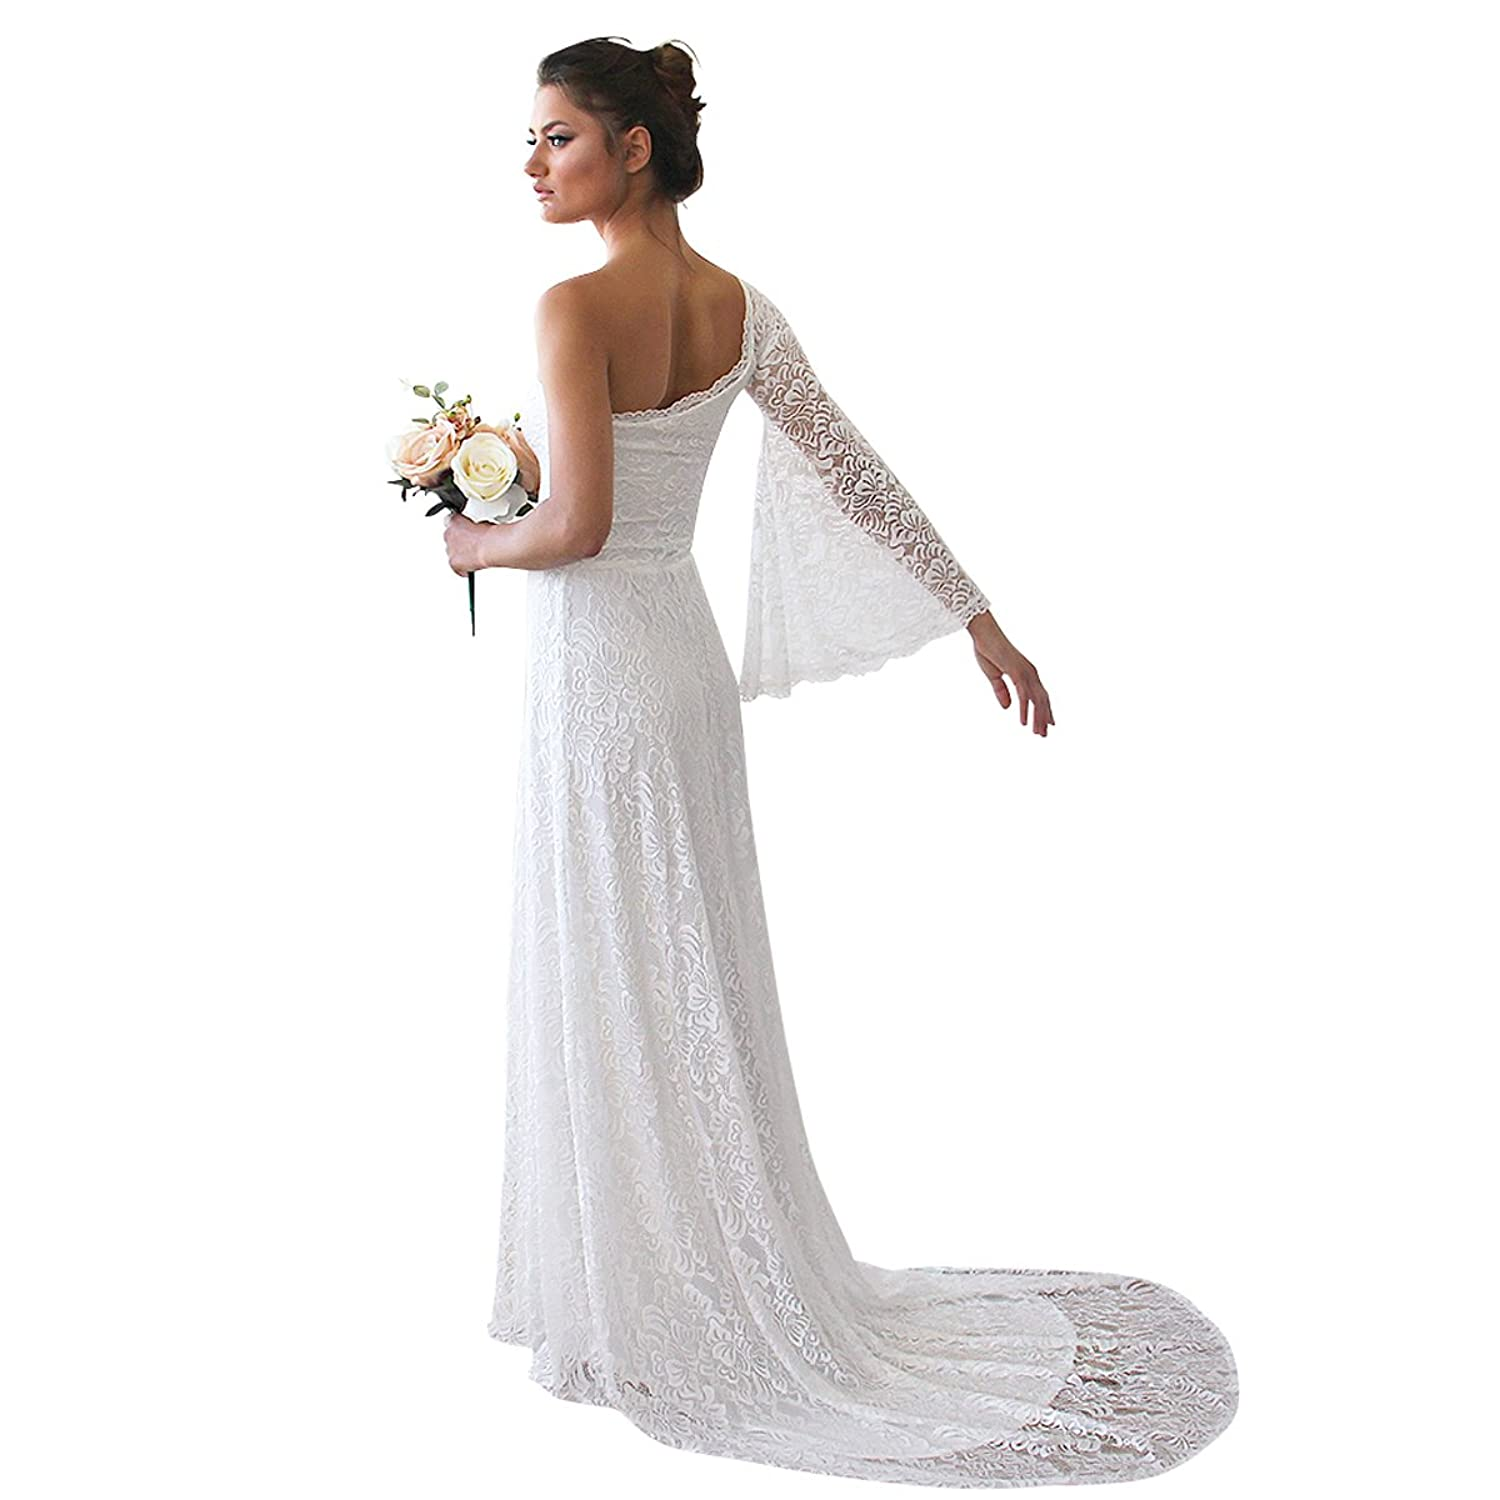 102fec246390 Blush One Shoulder Floral Lace Gown - 1166 Ivory Floor-Length Dress. Wedding  Gown With Long Train at Amazon Women's Clothing store: